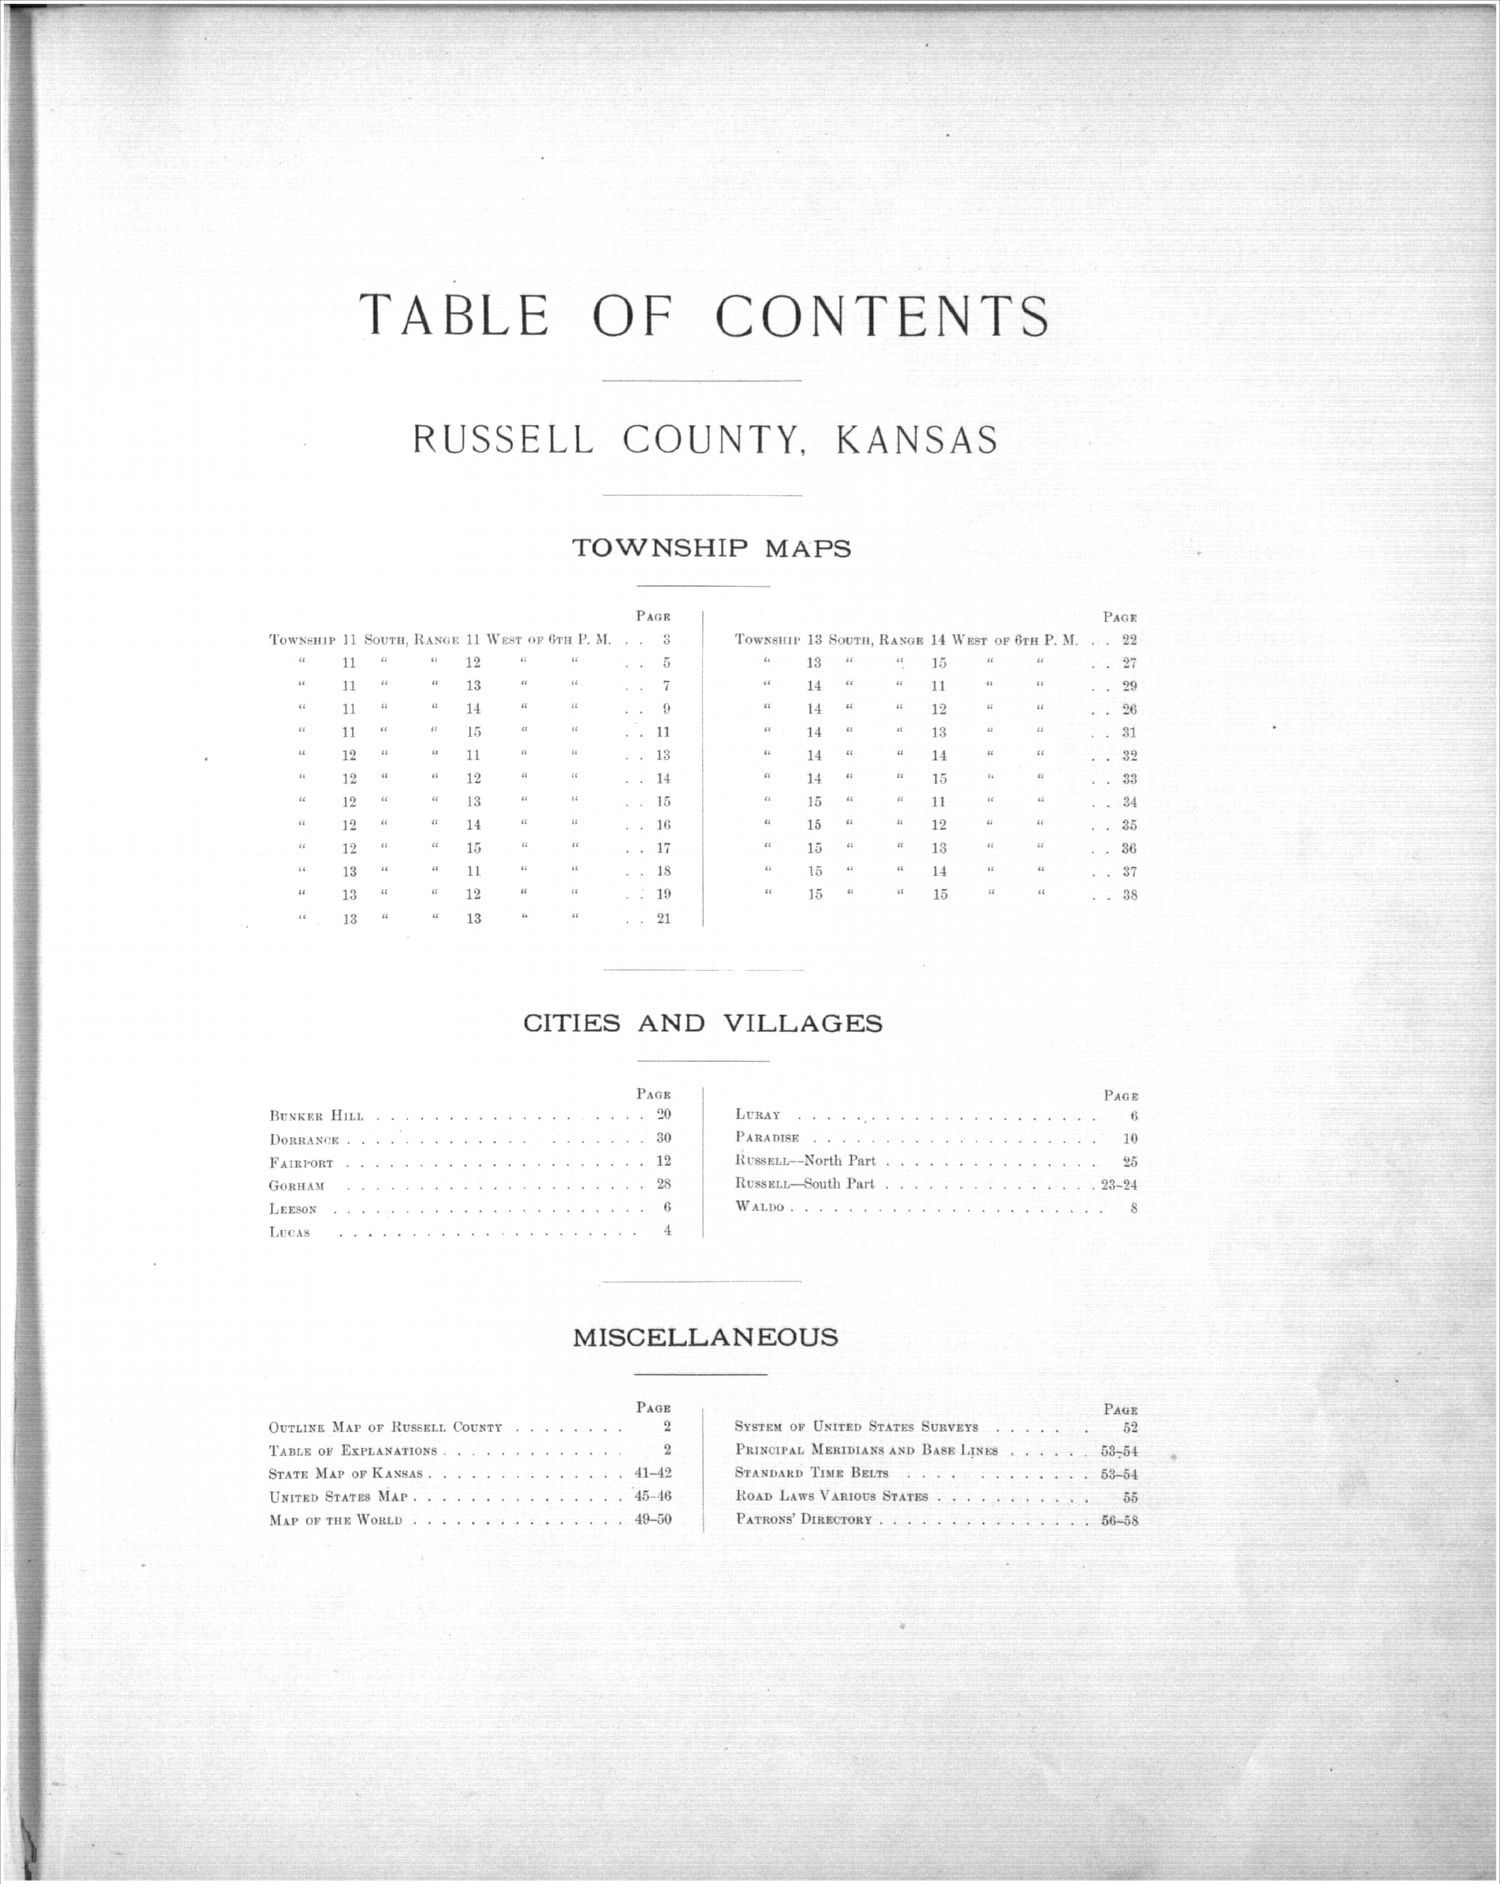 Plat book, Russell County, Kansas - Table of Contents